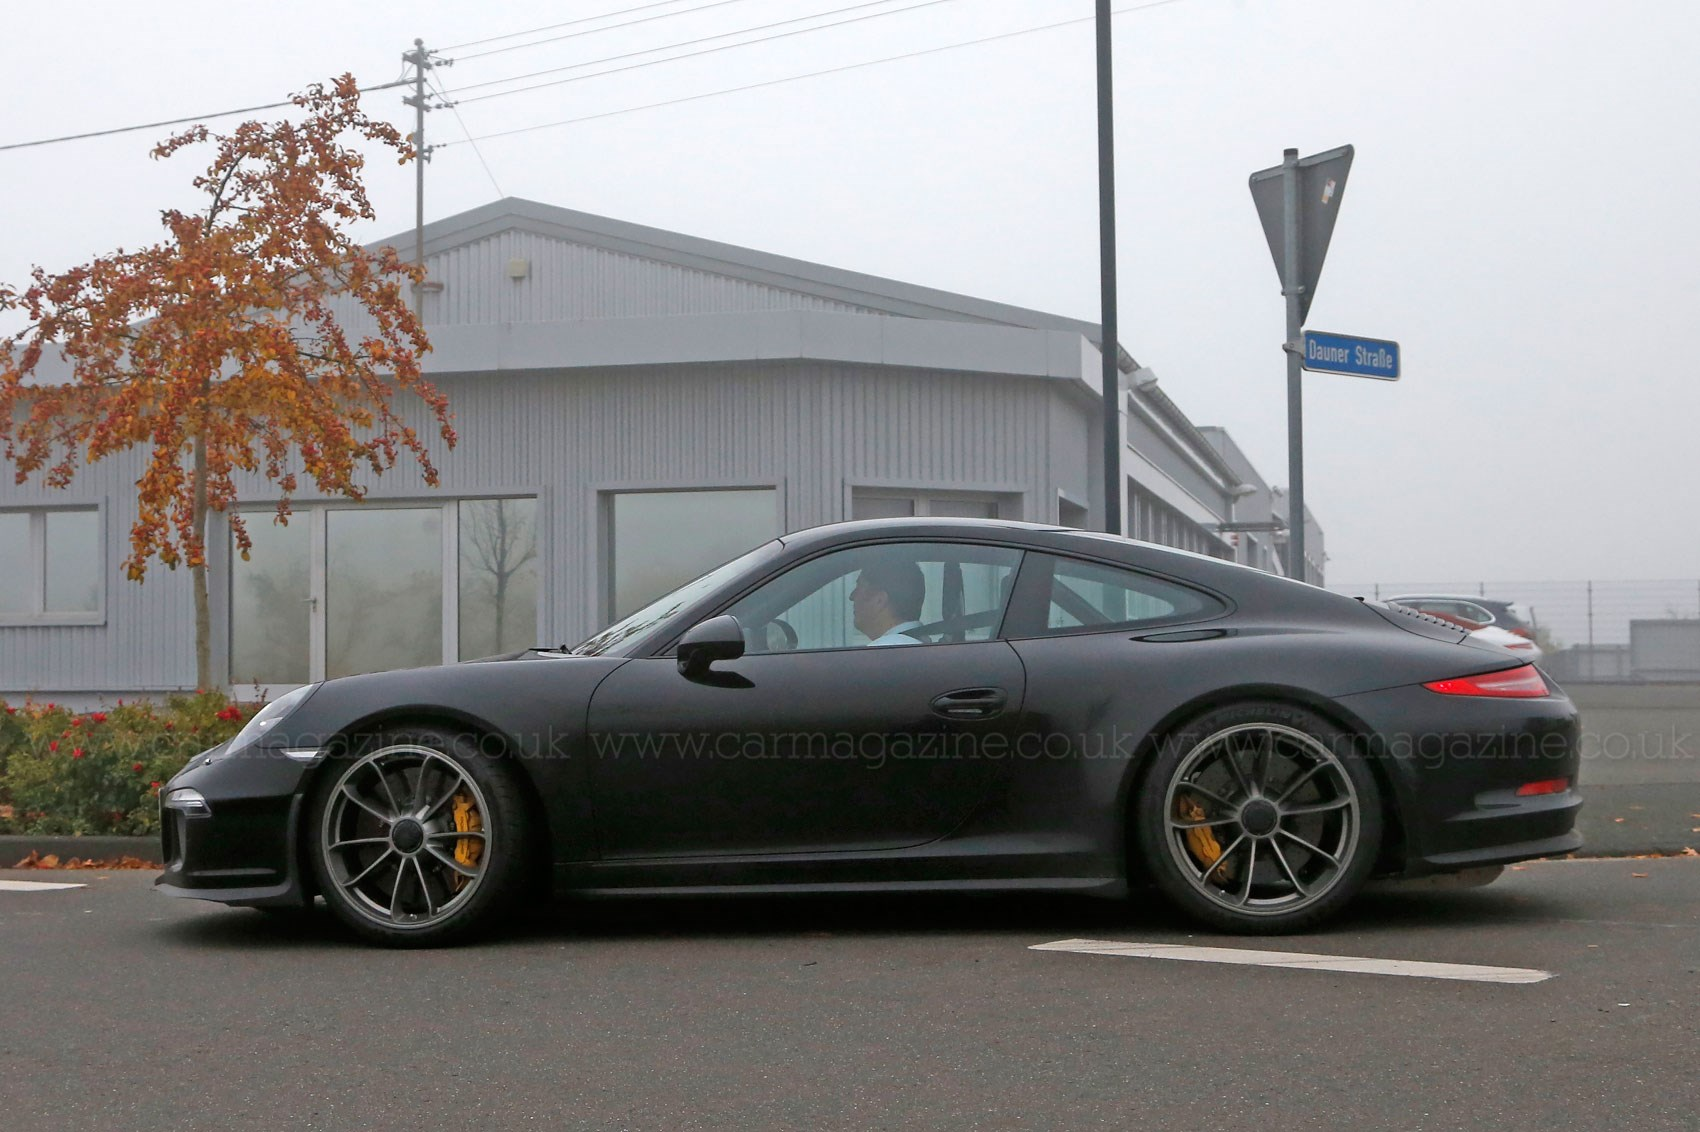 Porsche 911 R 2016 First Photos Of The Back To Basics 911 By Car Magazine